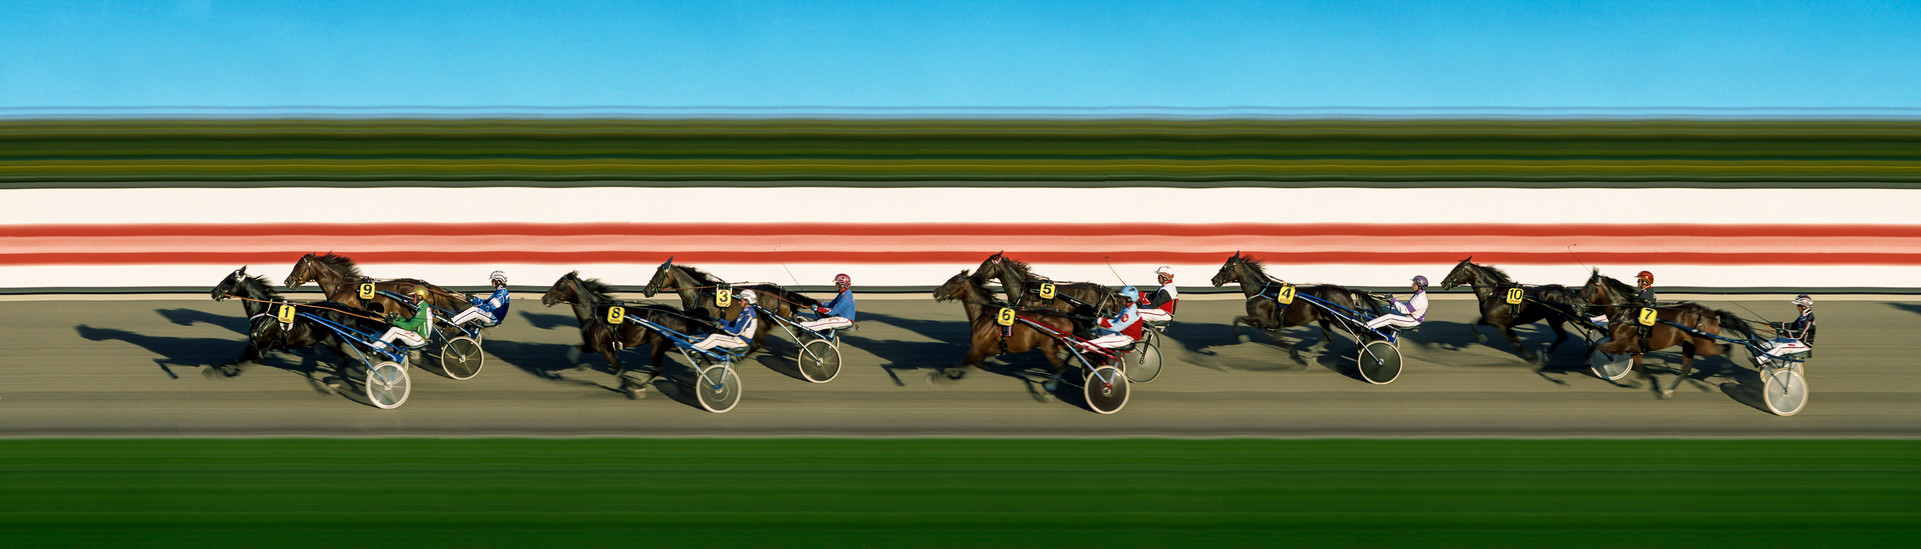 solvalla 3Photo Danish SaroeePhoto Danis